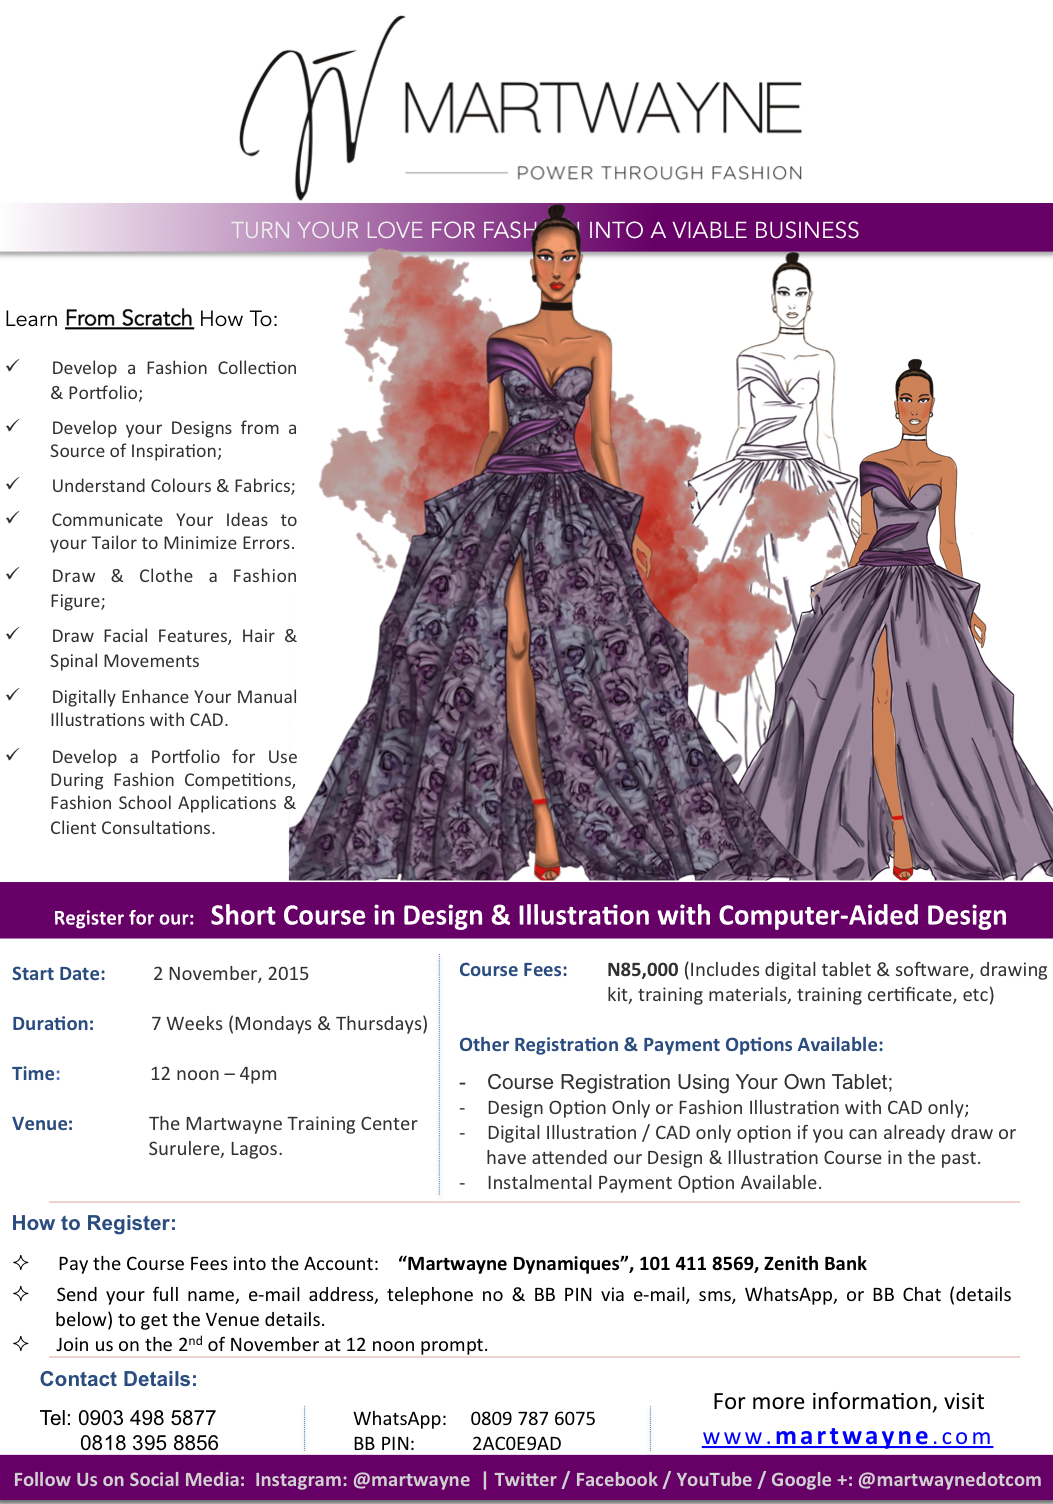 Take Your Love For Fashion To The Next Level With Martwayne S Fashion Design Illustration Course With Computer Aided Design Cad Classes Begin November 2nd Bellanaija